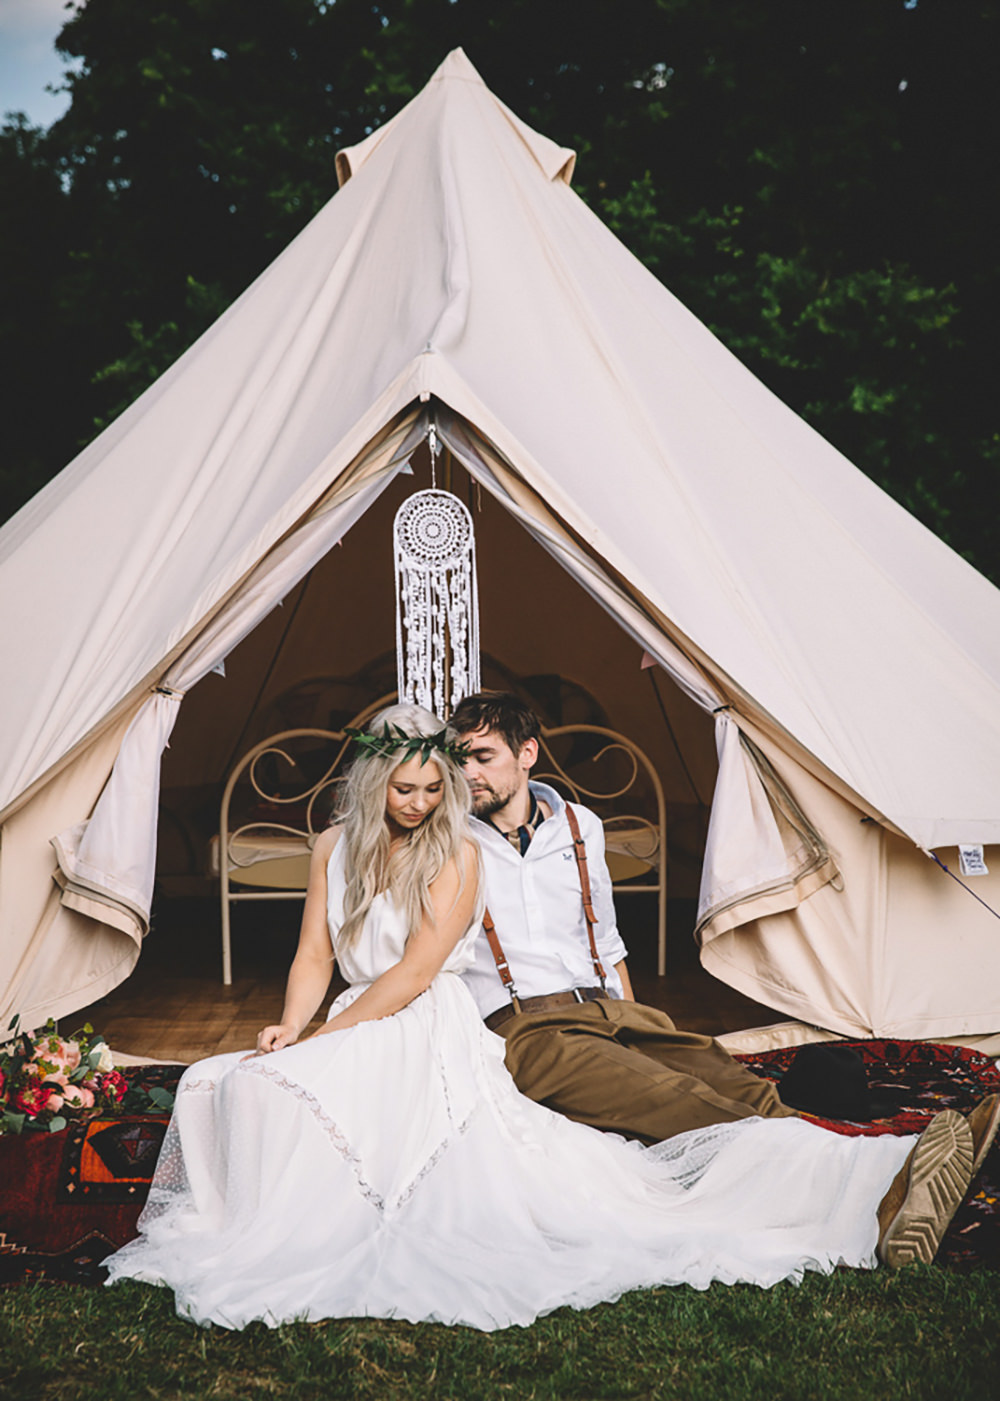 Bell Tents Glamping Bride Groom Free Spirited Wedding Ideas Woodland Lumiere Photographic